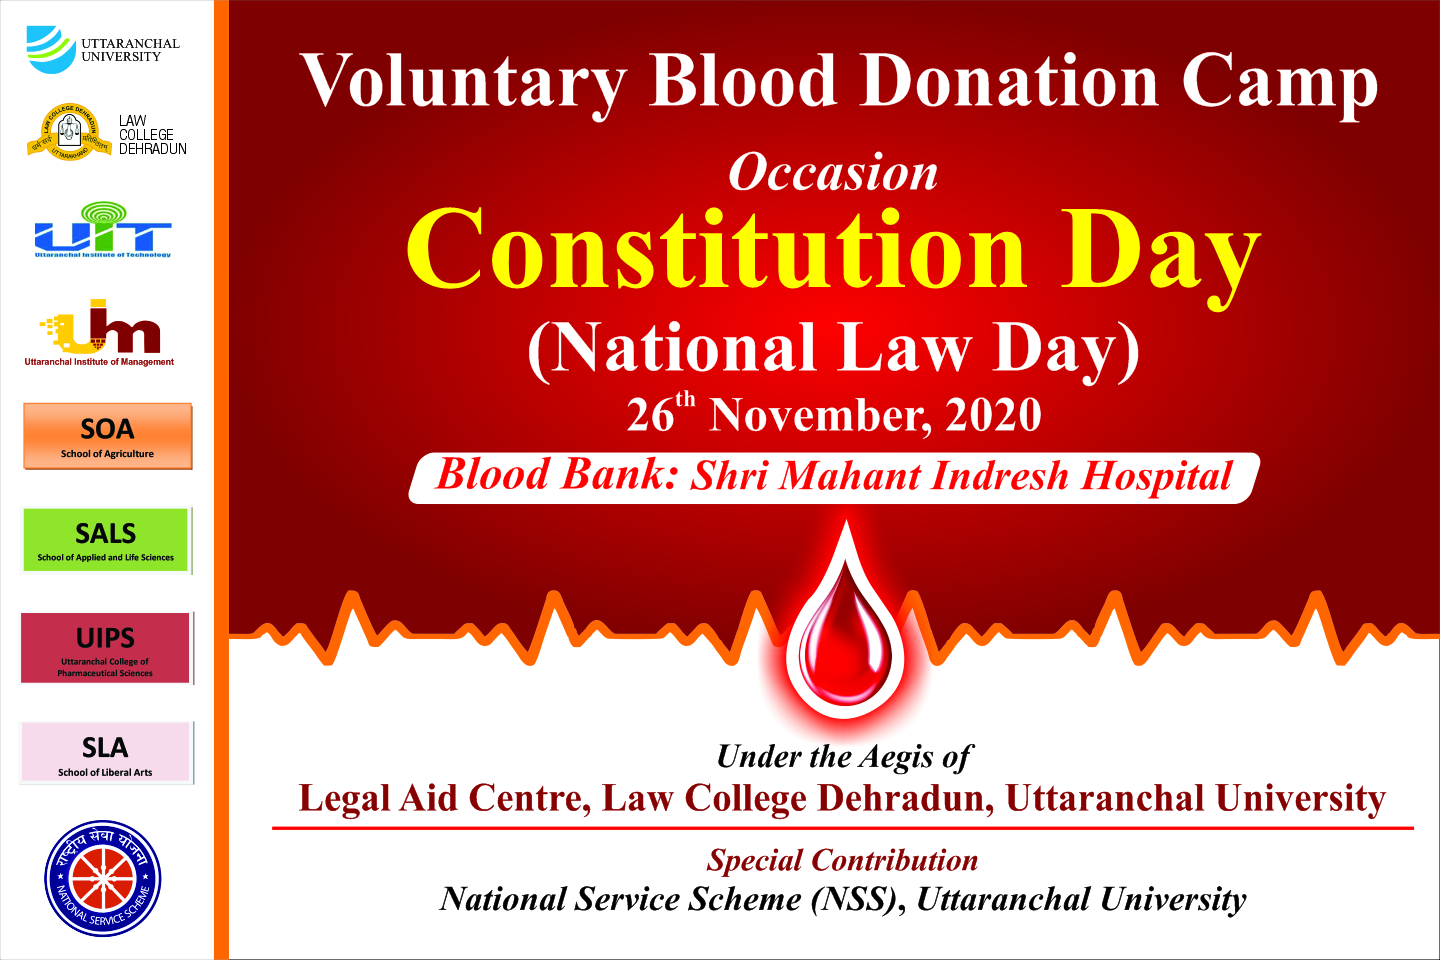 Voluntary Blood Donation Camp Occasion Constitution Day (National Law Day) 26th November, 2020 Blood Bank: Shri Mahant Indresh Hospital